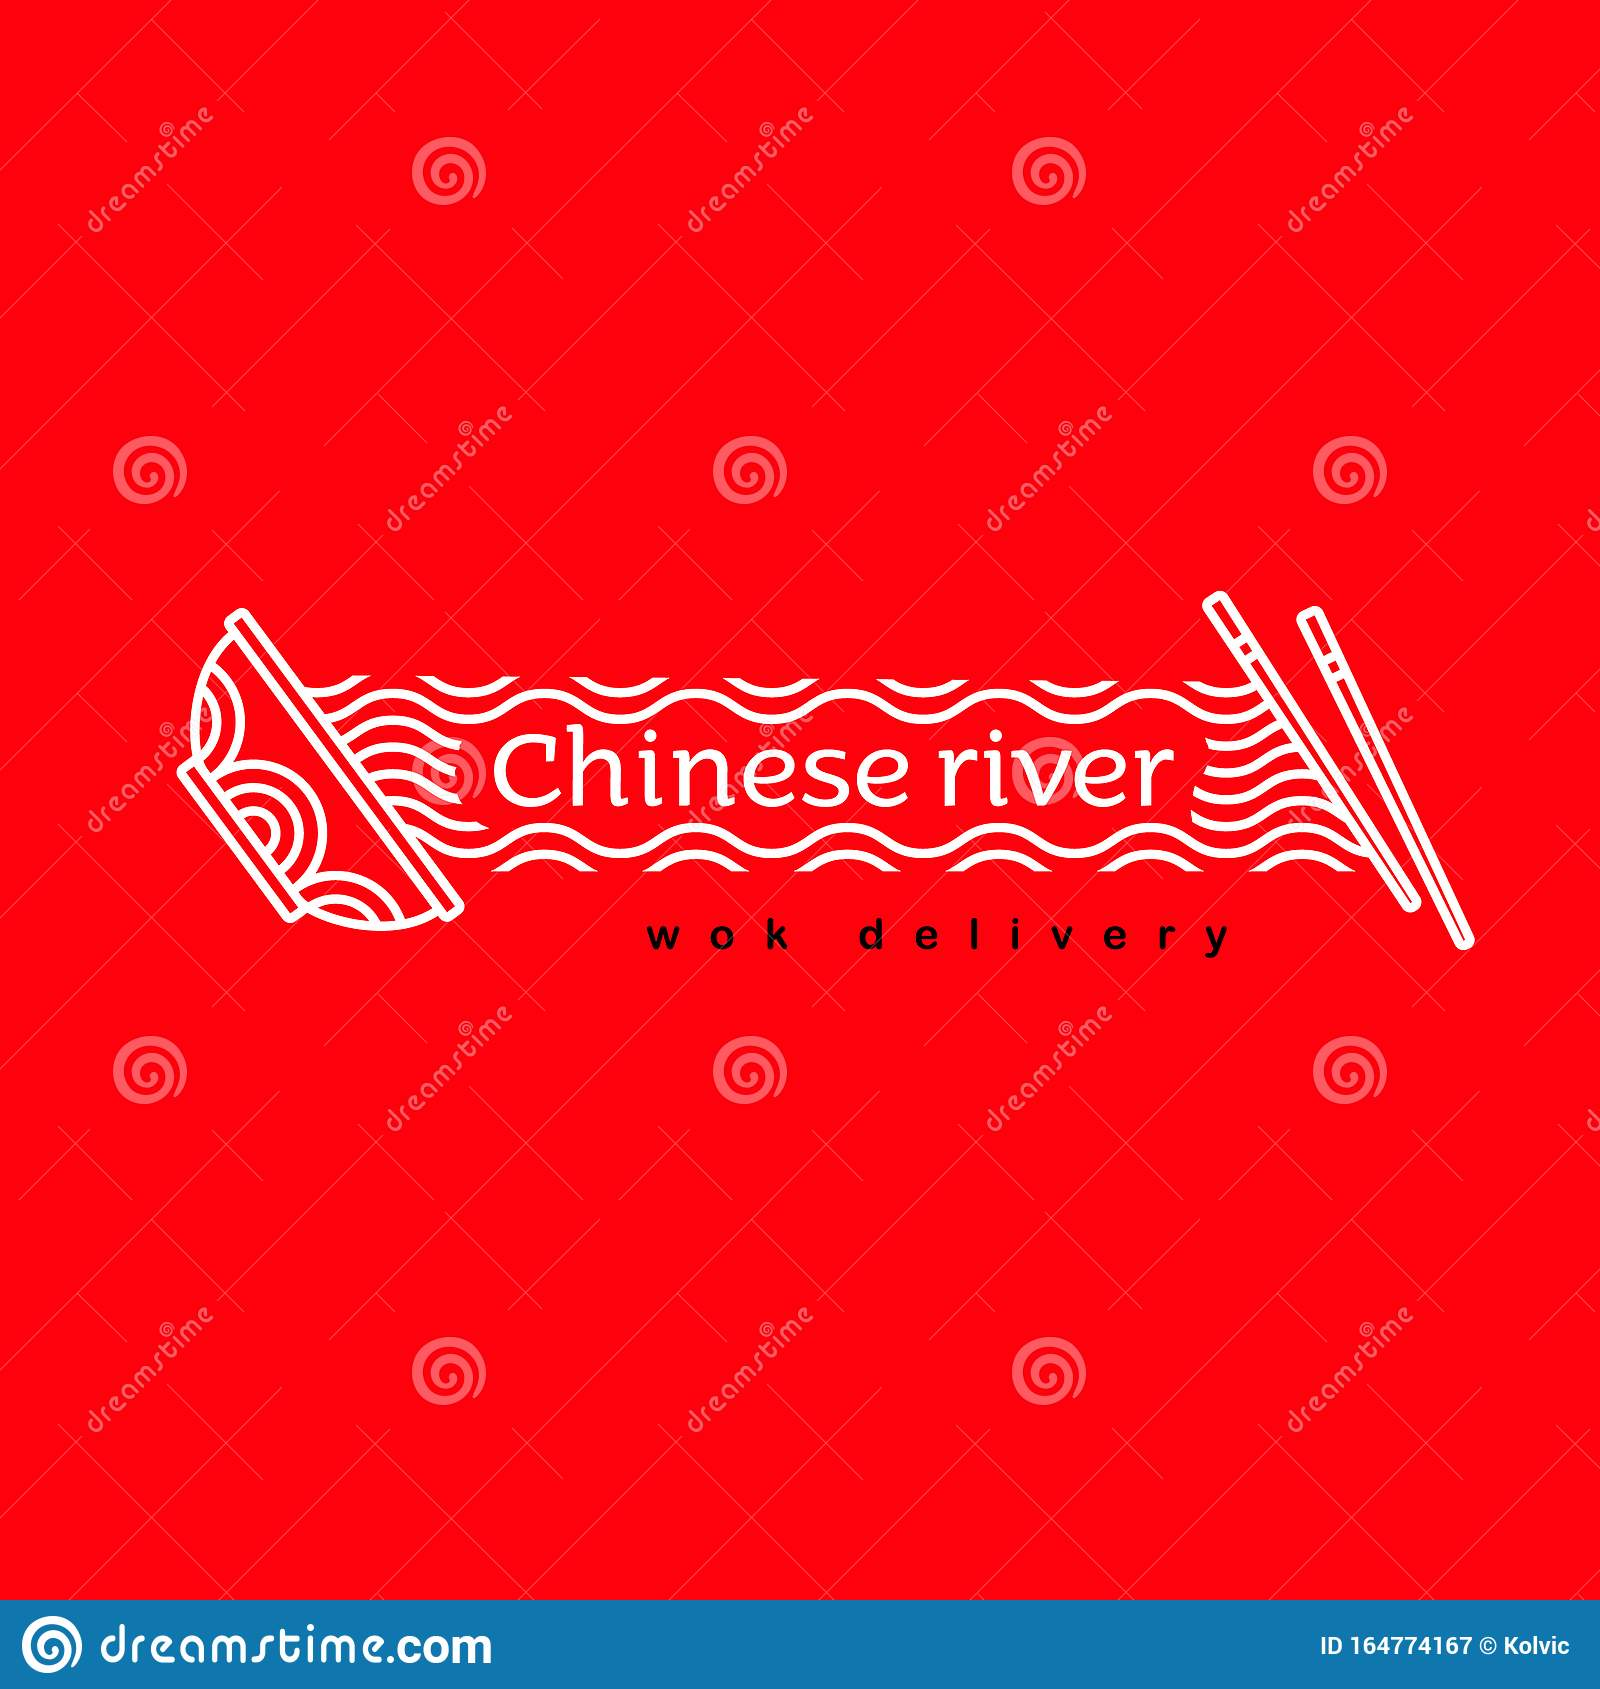 Vector Logo Abstract Design For Chinese Food Stock Vector Illustration Of Noodles China 164774167